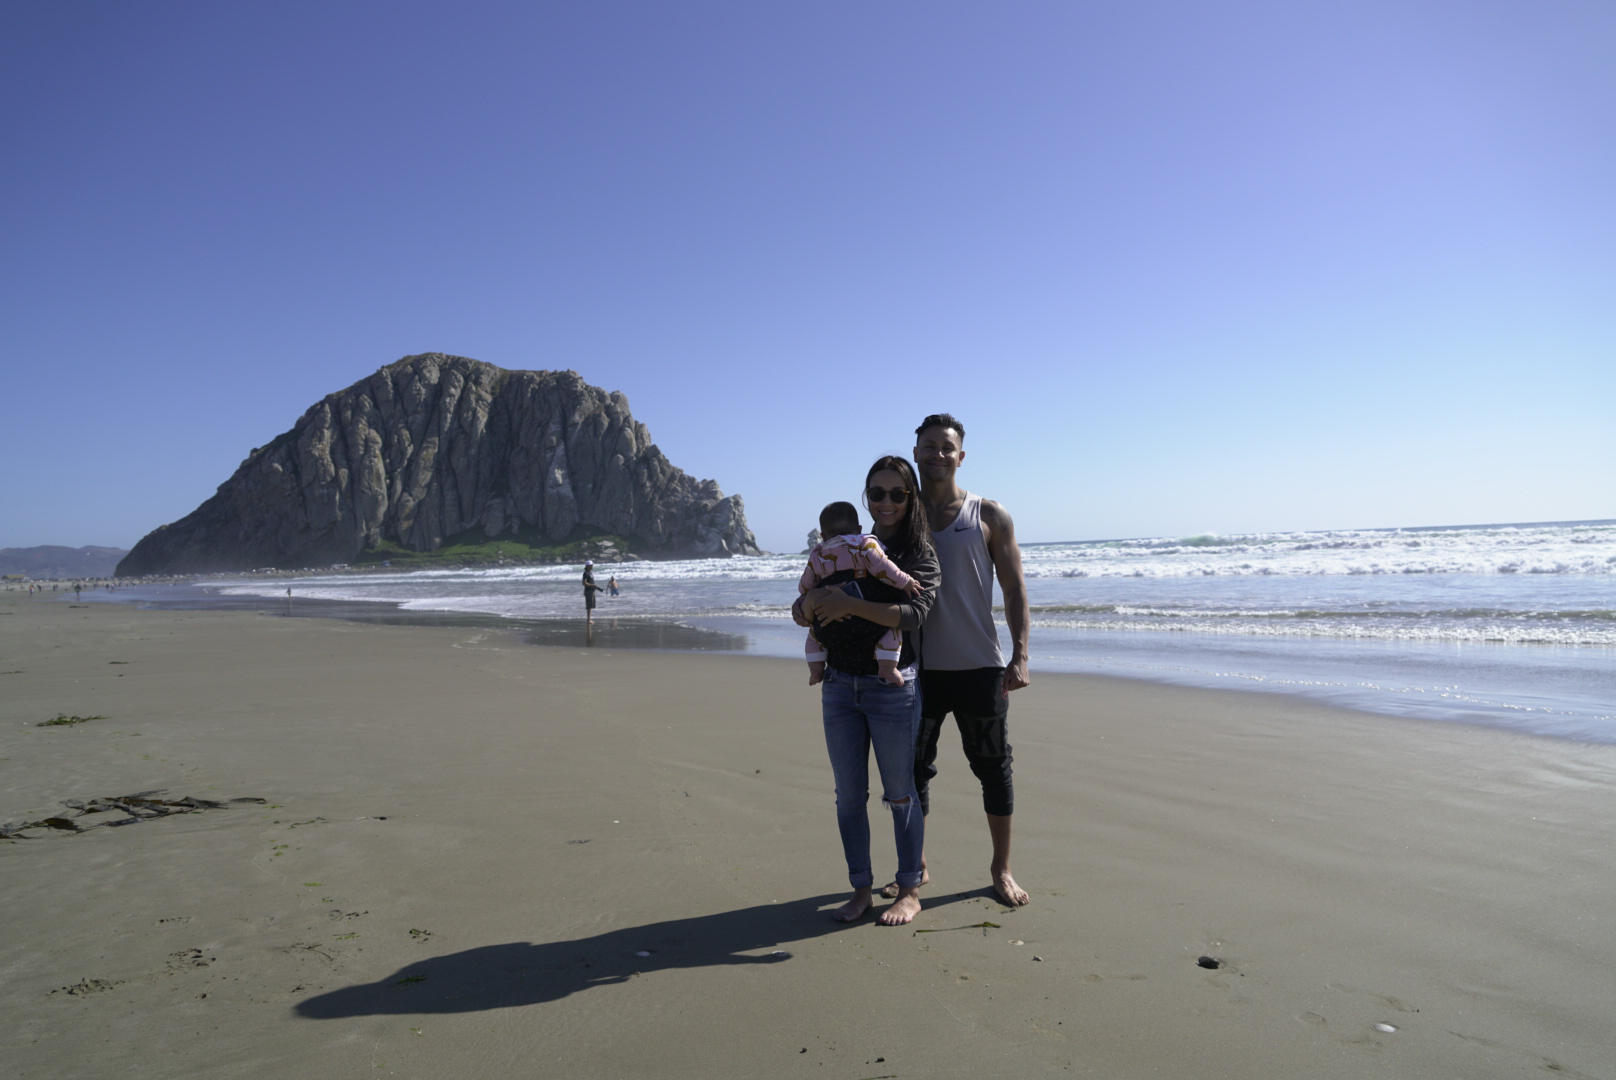 Introducing Alo to the ocean at 4 months old. Photo by Siera Begaye. @sweetsib